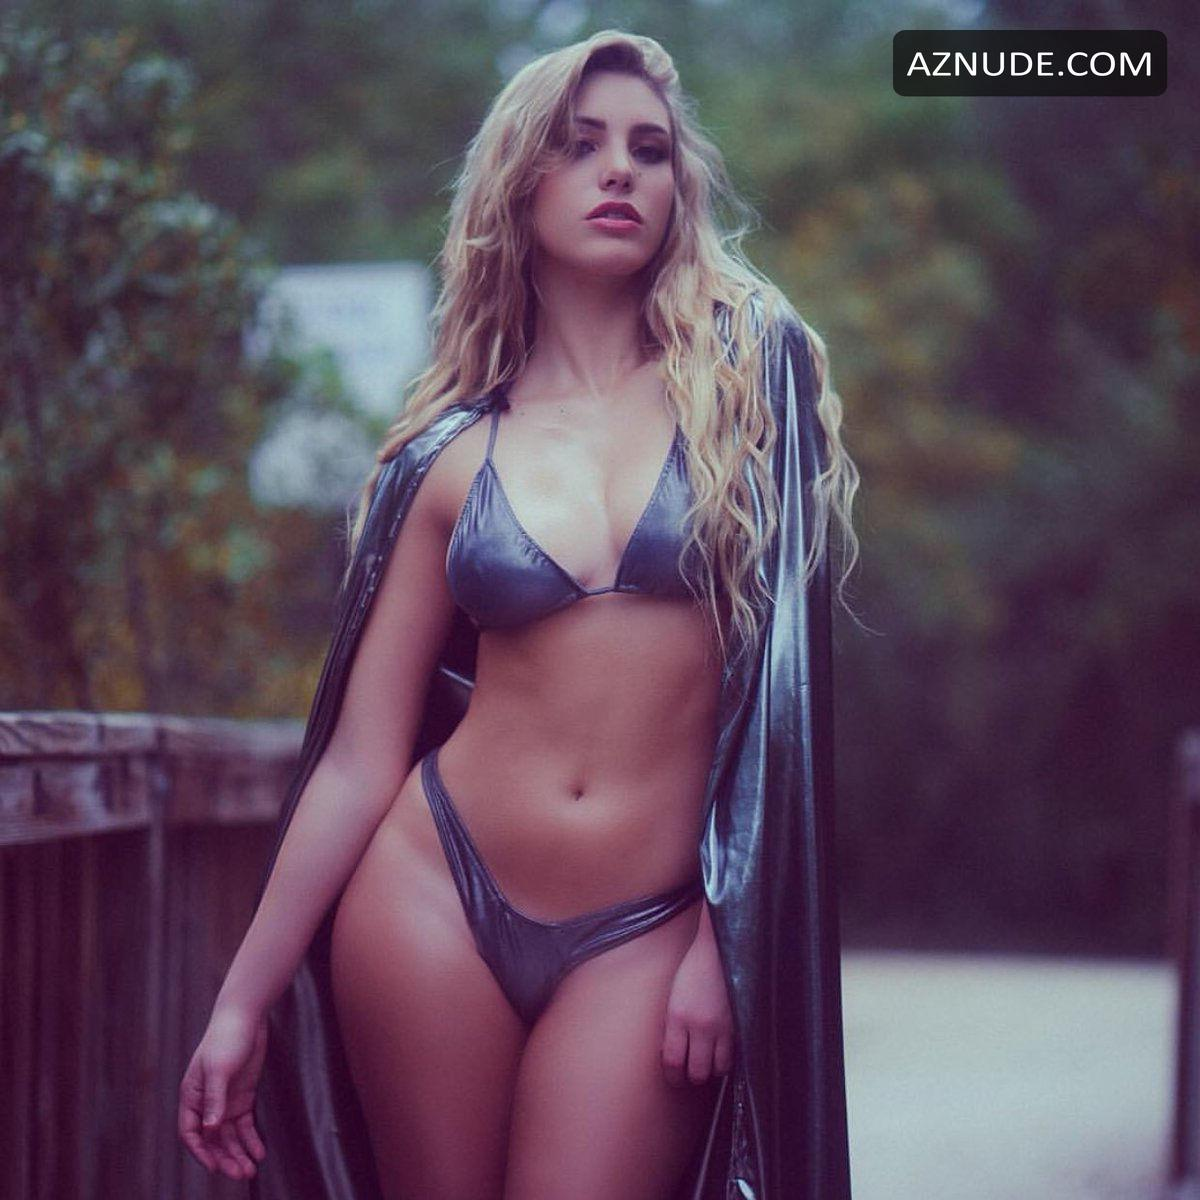 Lele Pons Hot Photoshoot